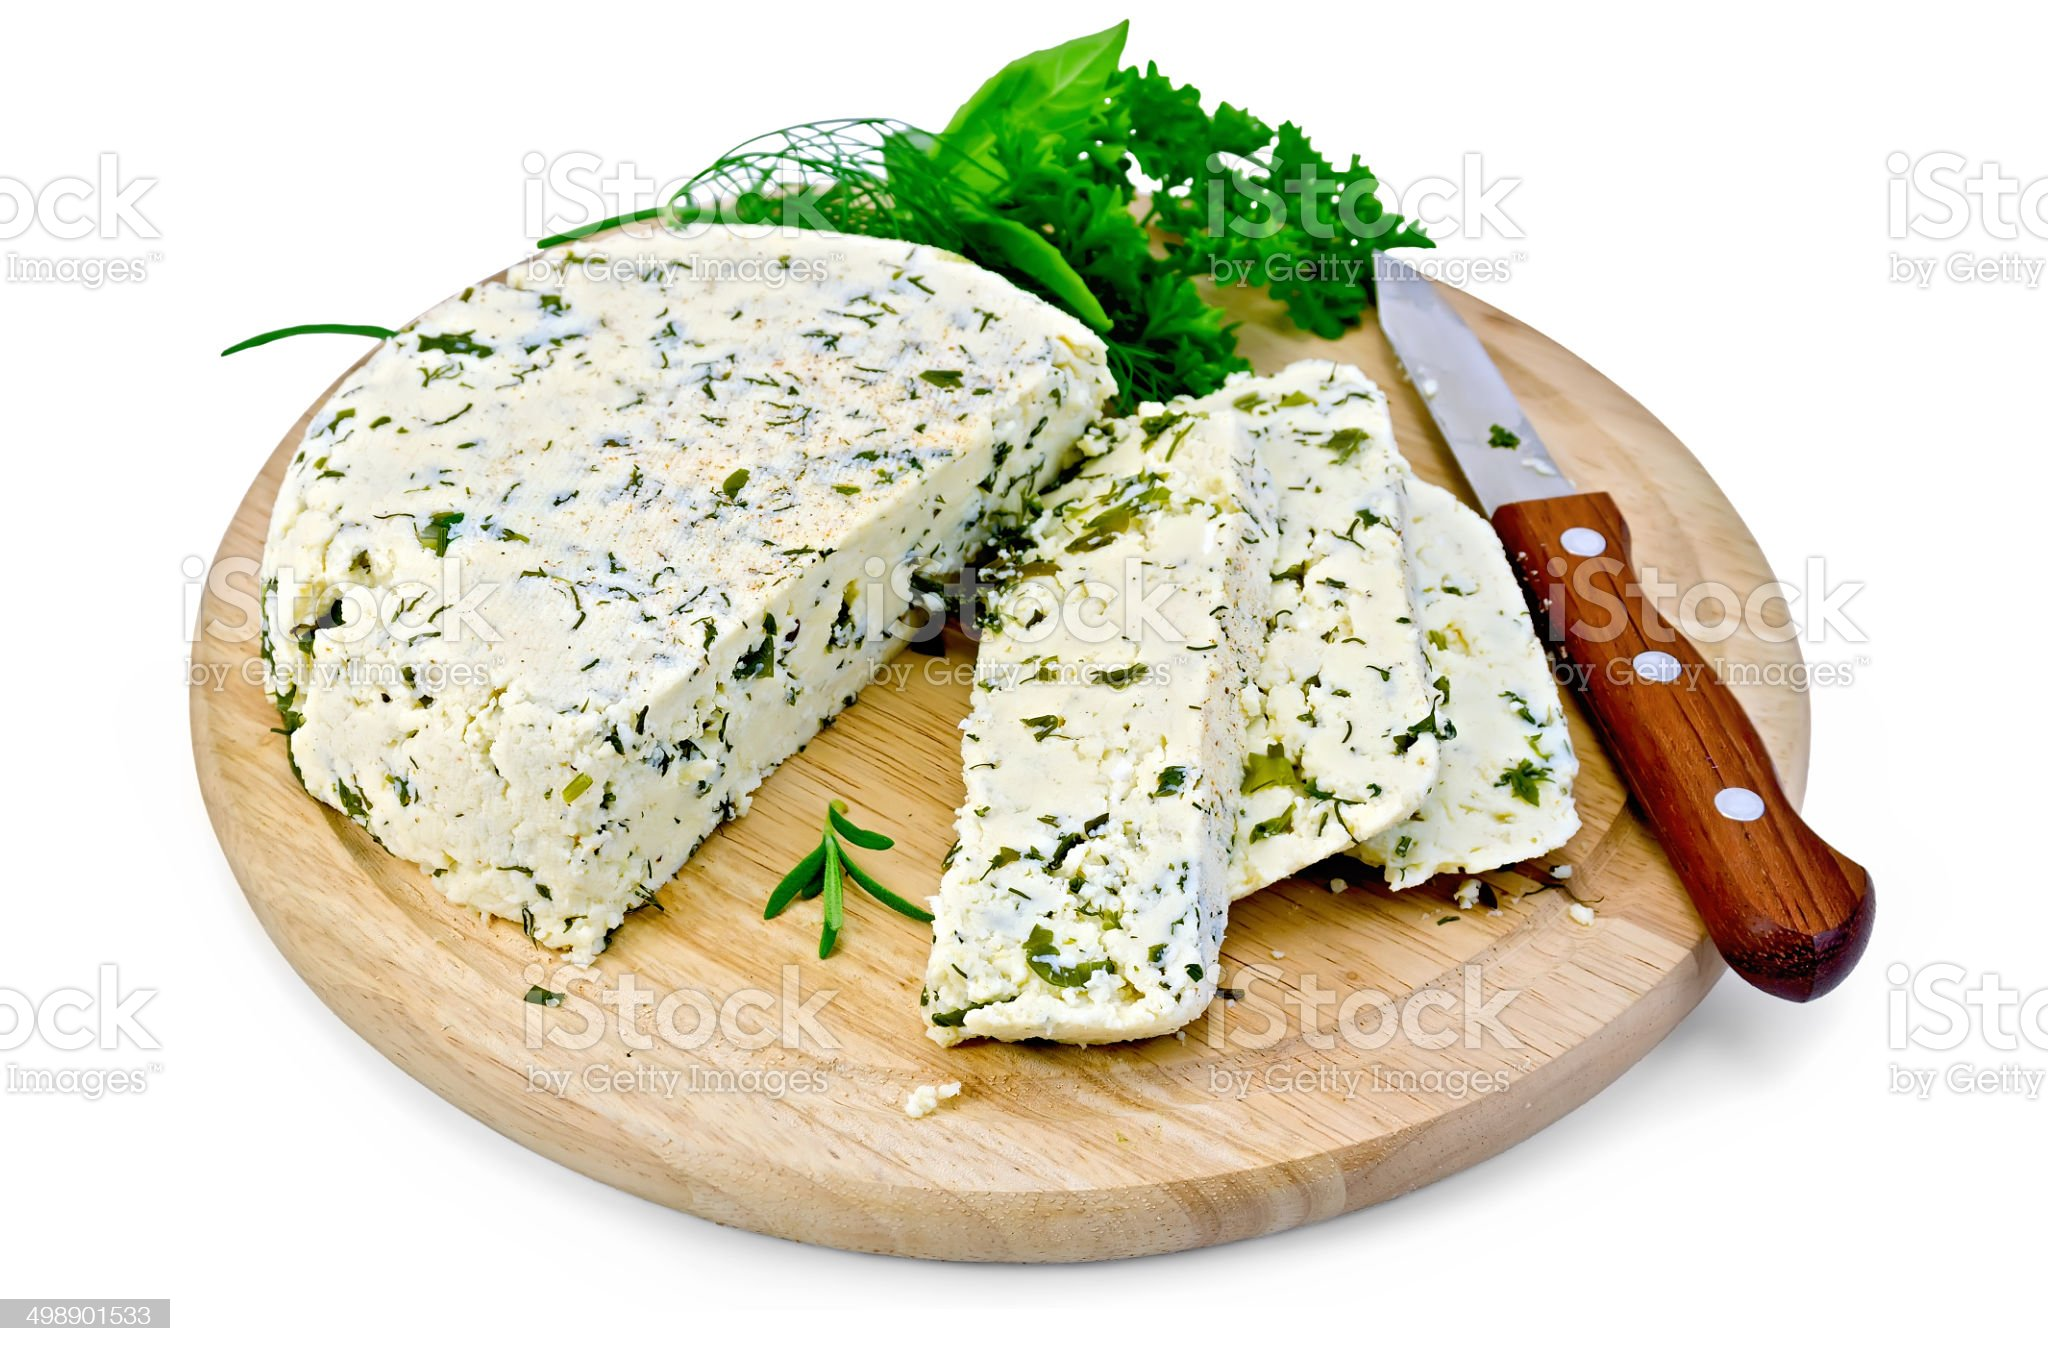 Cheese homemade with spices on a round board royalty-free stock photo